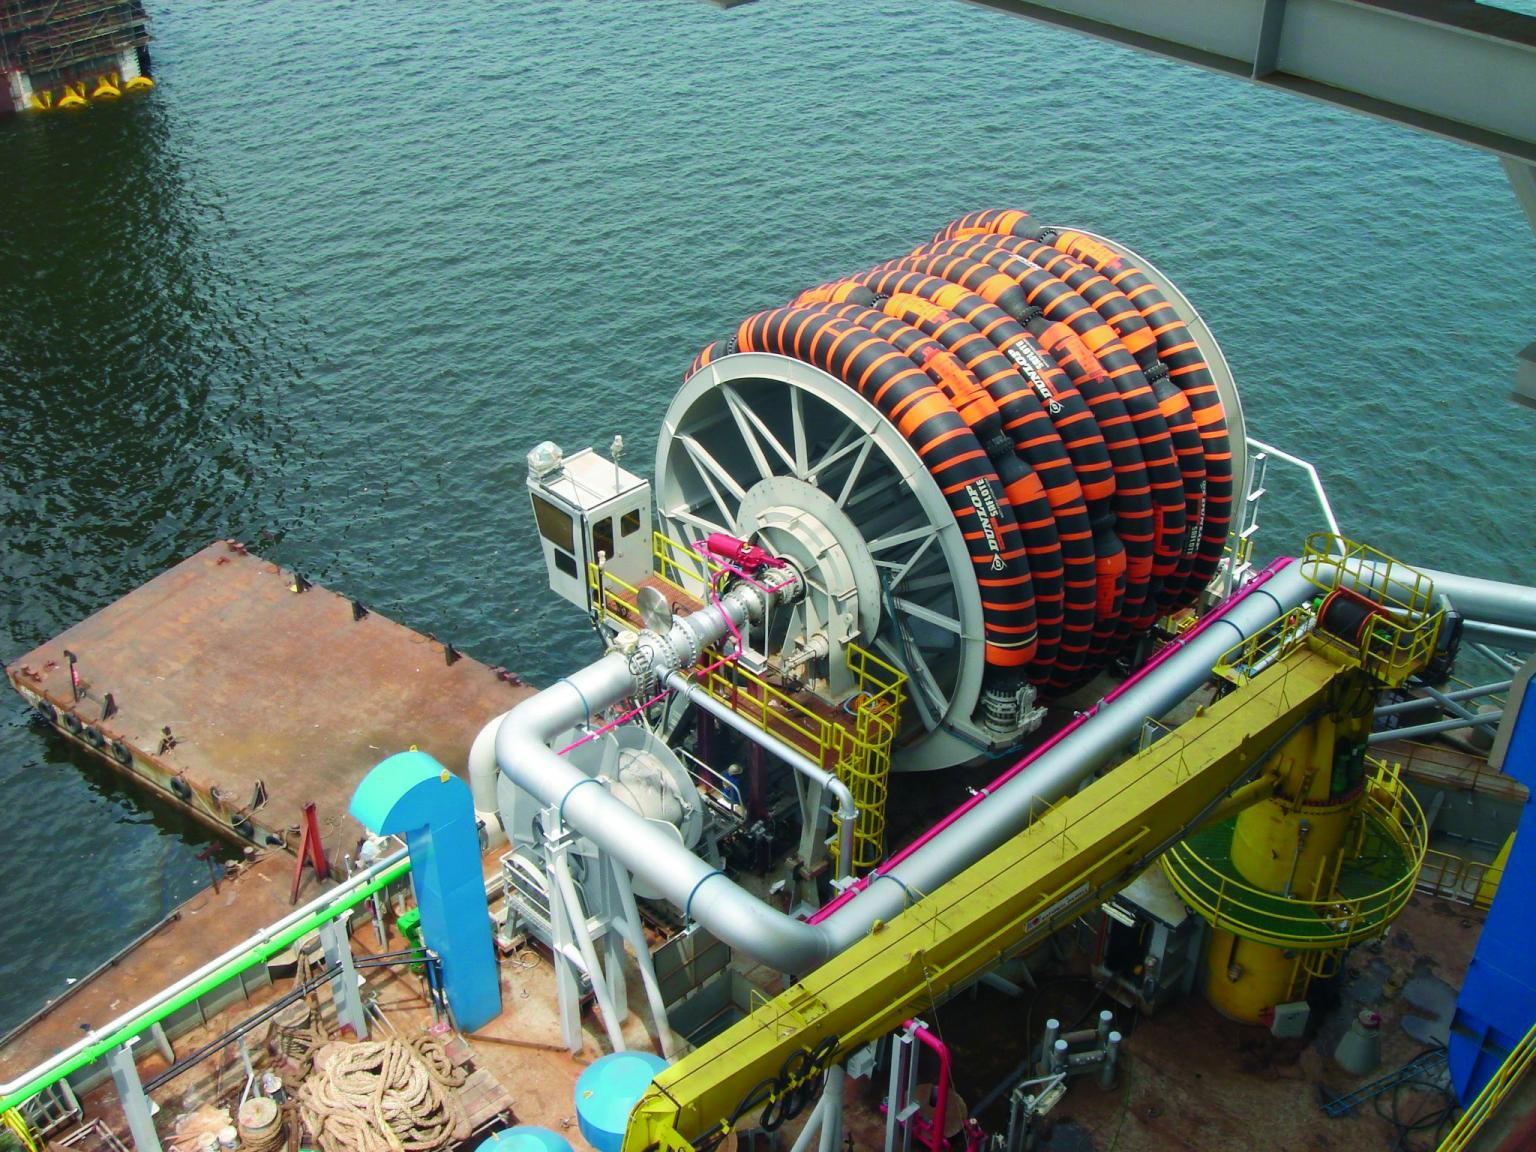 For more than 50 years, the high-performance marine hoses have enjoyed an outstanding worldwide reputation. Their high quality means they can withstand the harsh conditions that prevail on offshore facilities.